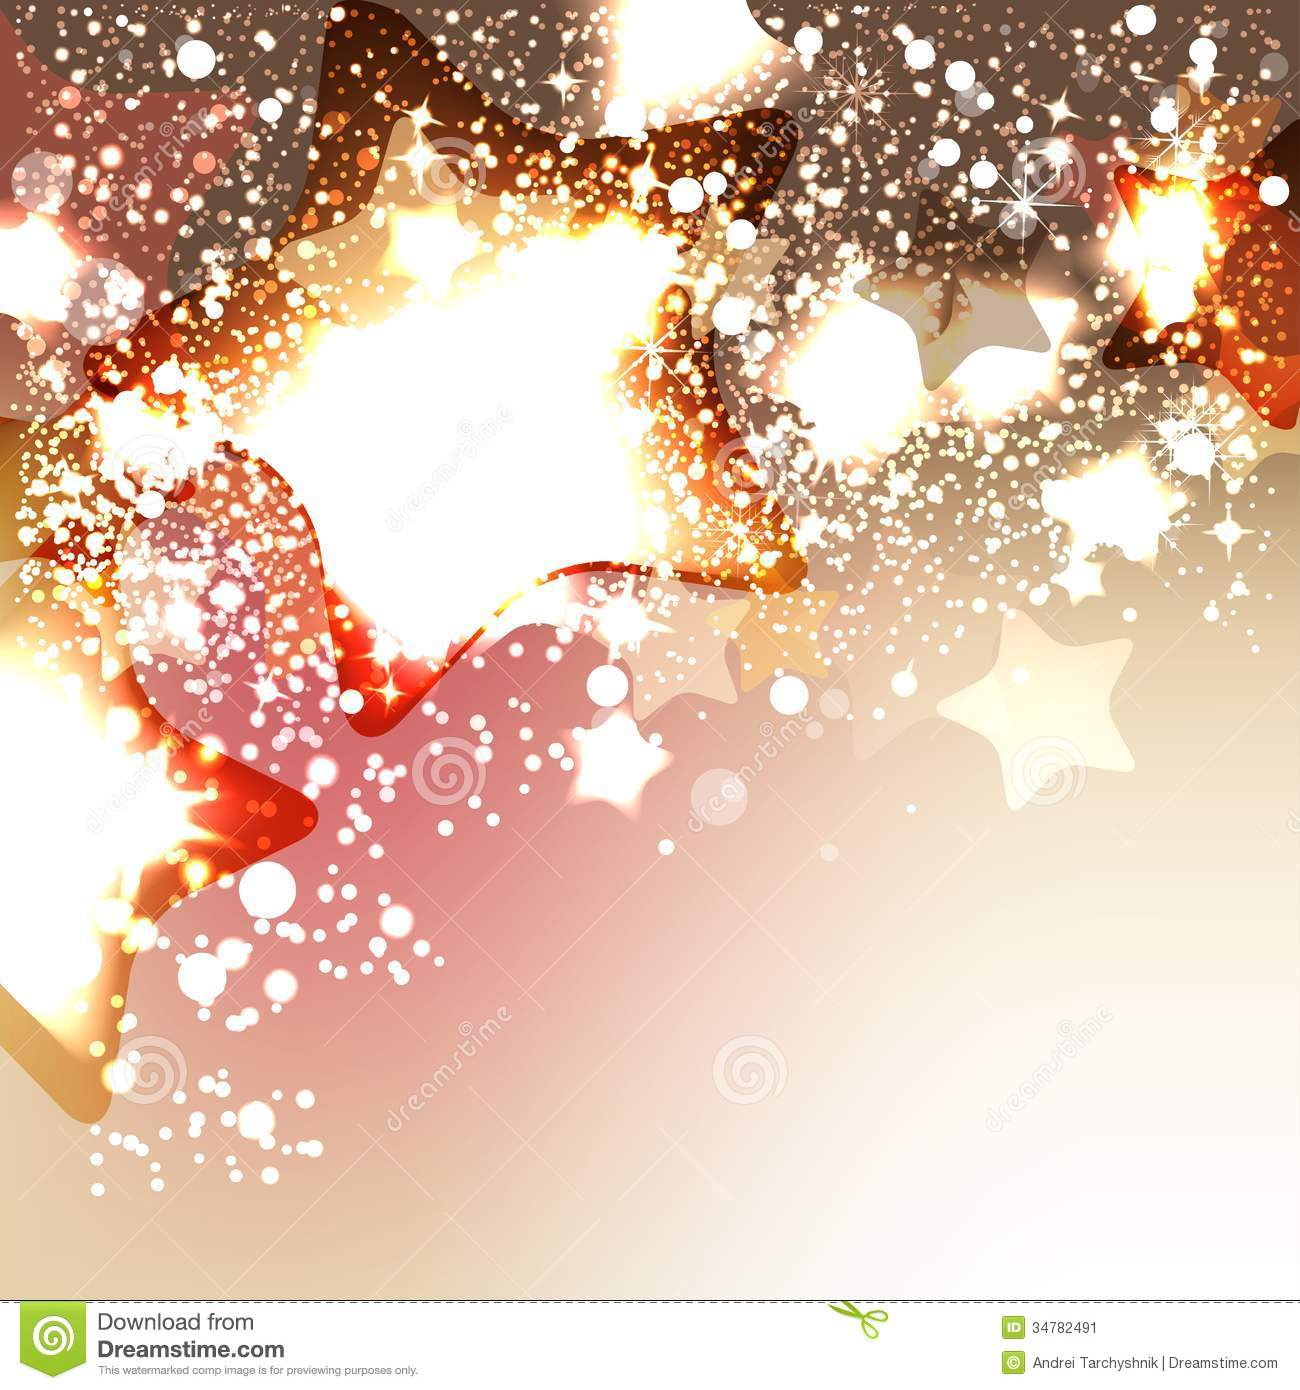 Classy Christmas Backgrounds Images